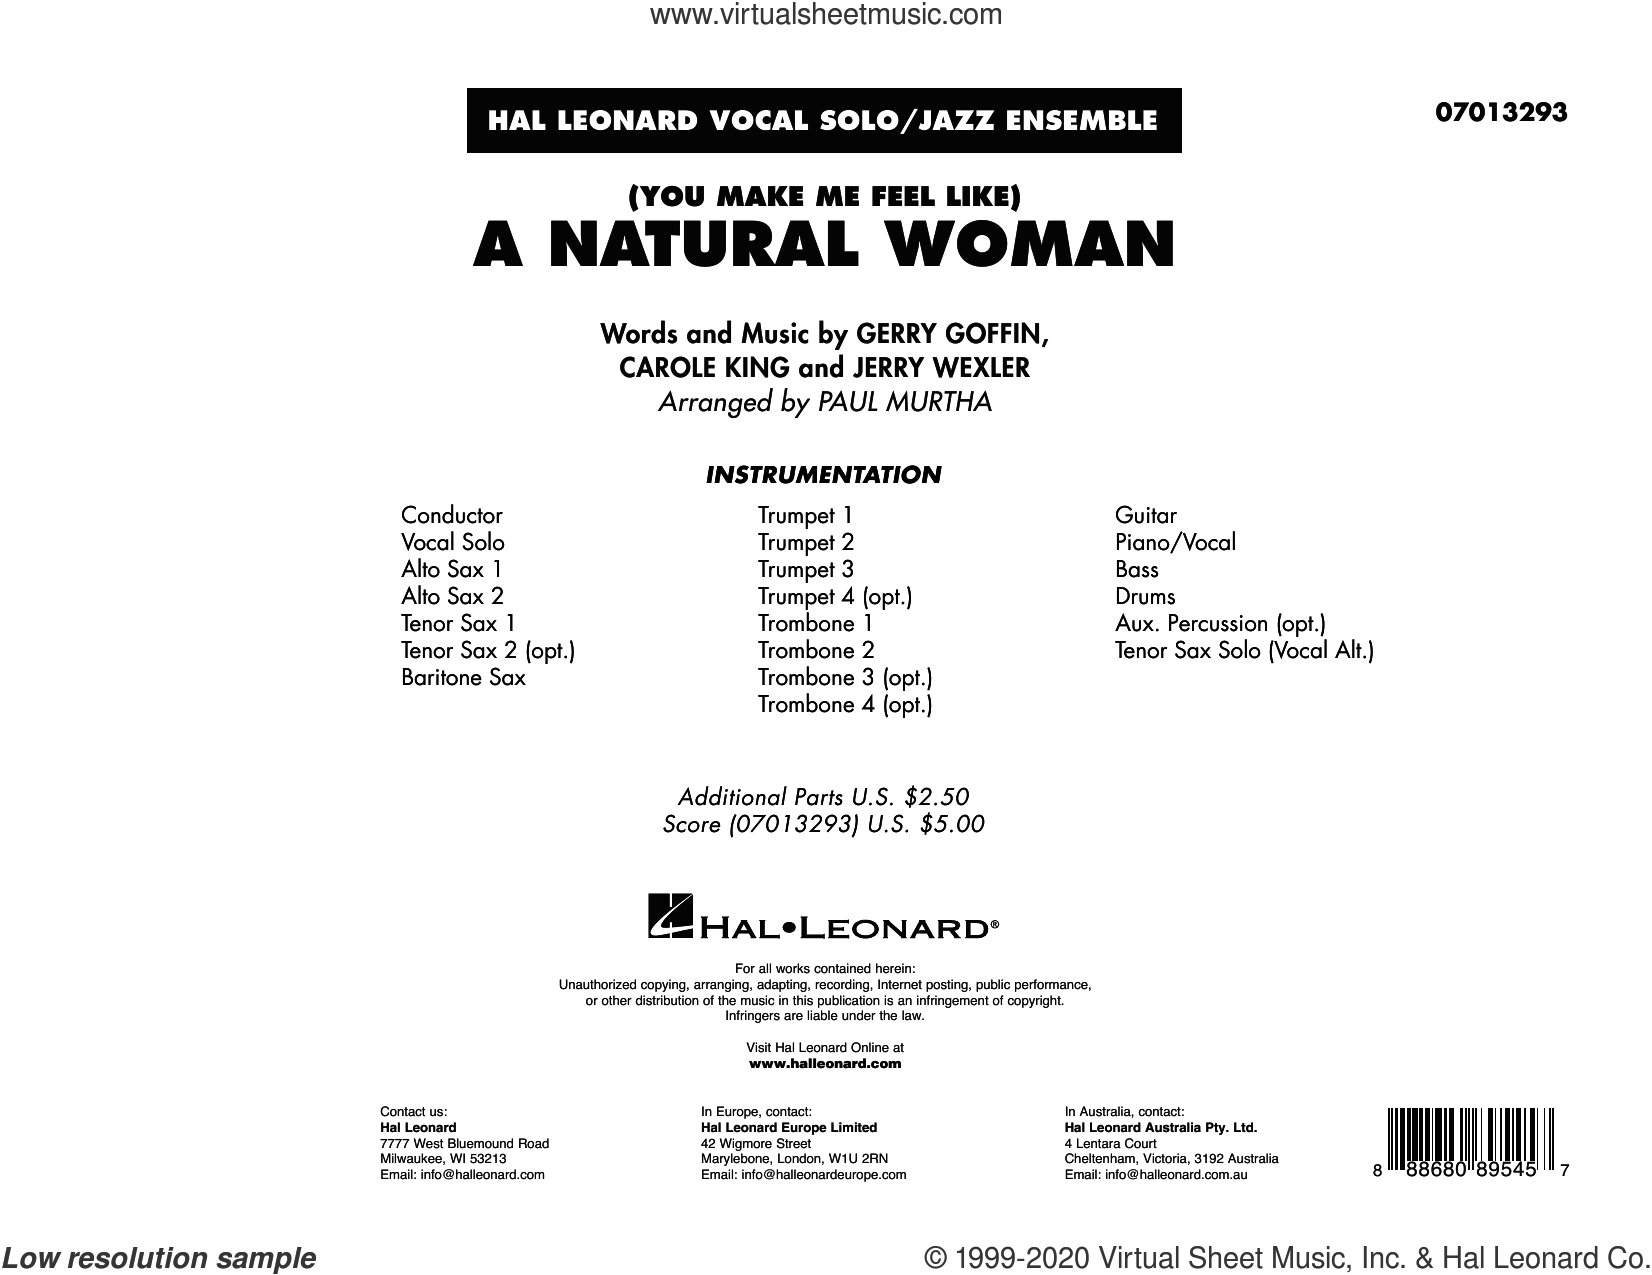 (You Make Me Feel Like) A Natural Woman (arr. Paul Murtha) (COMPLETE) sheet music for jazz band by Aretha Franklin, Gerry Goffin, Jerry Wexler and Paul Murtha, intermediate skill level